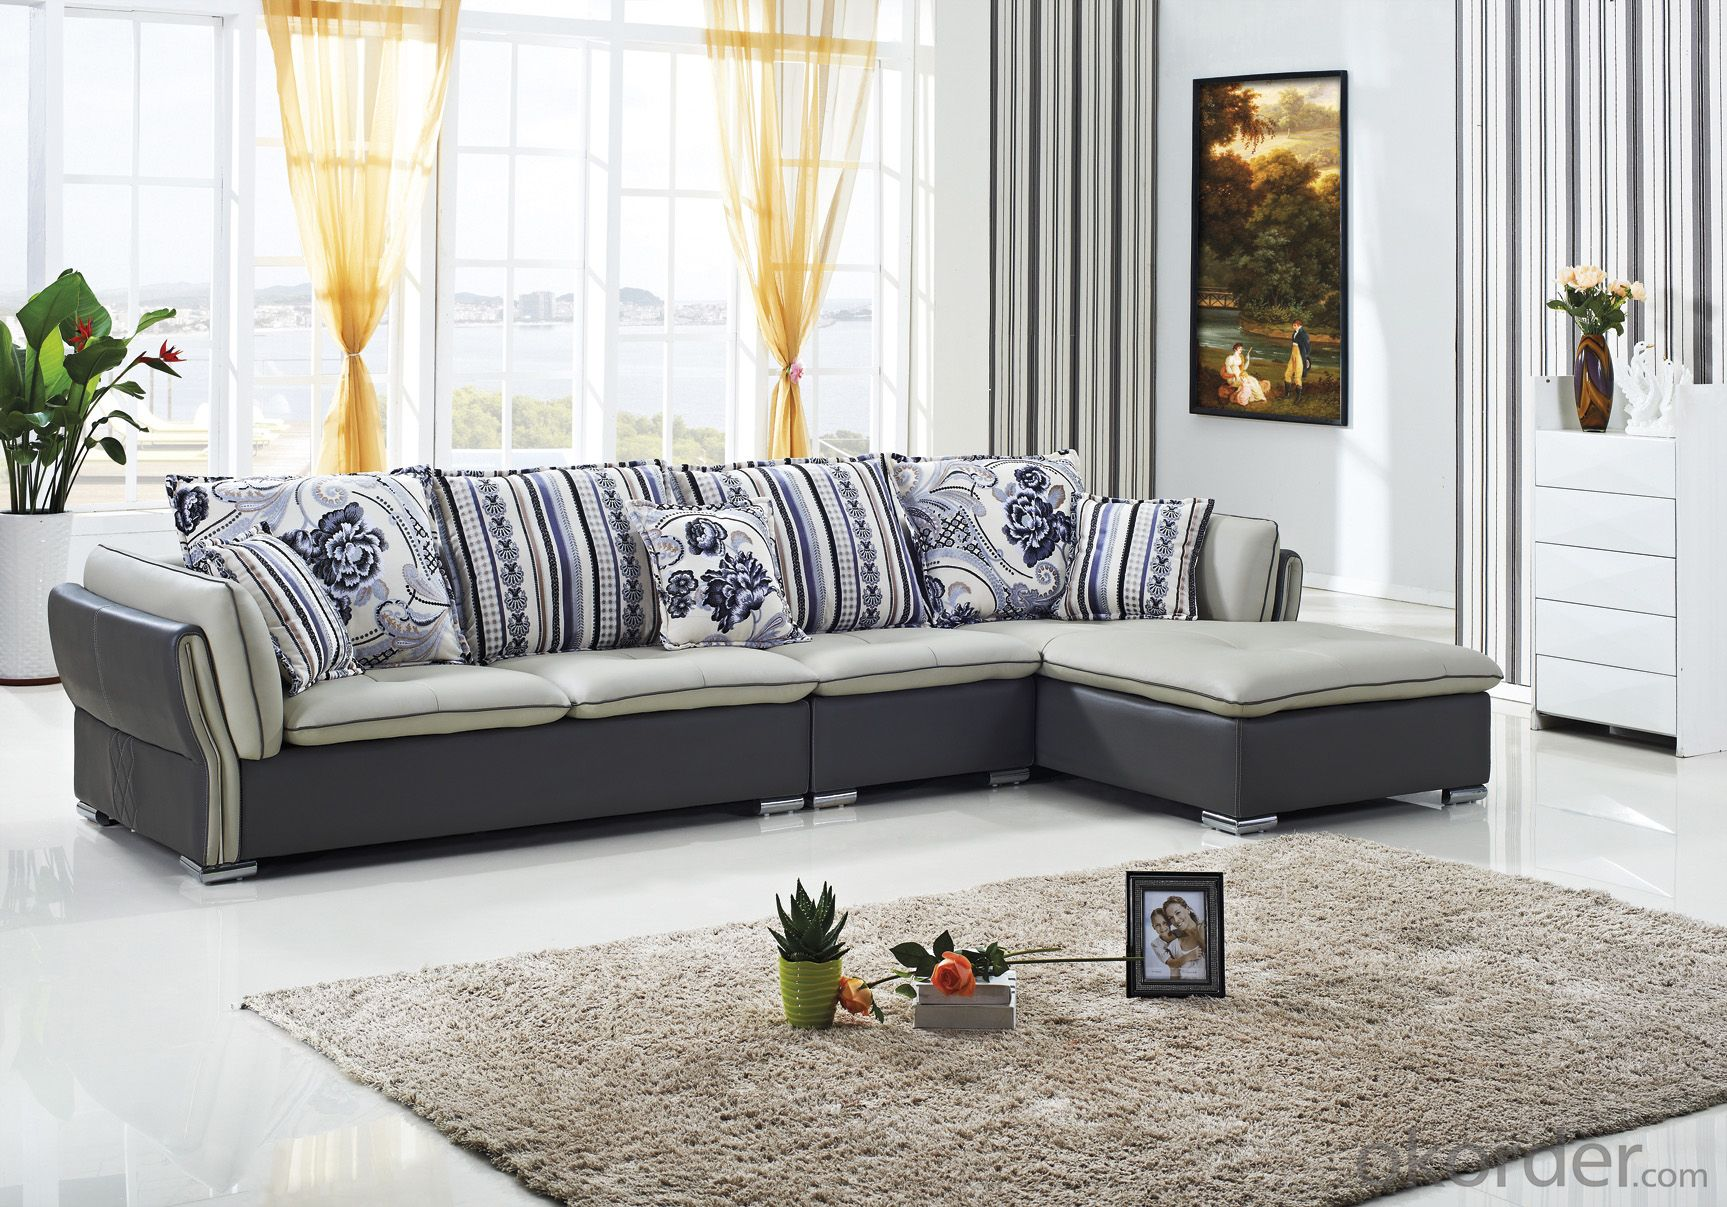 CNBM US popular leather sofa set CMAX-12